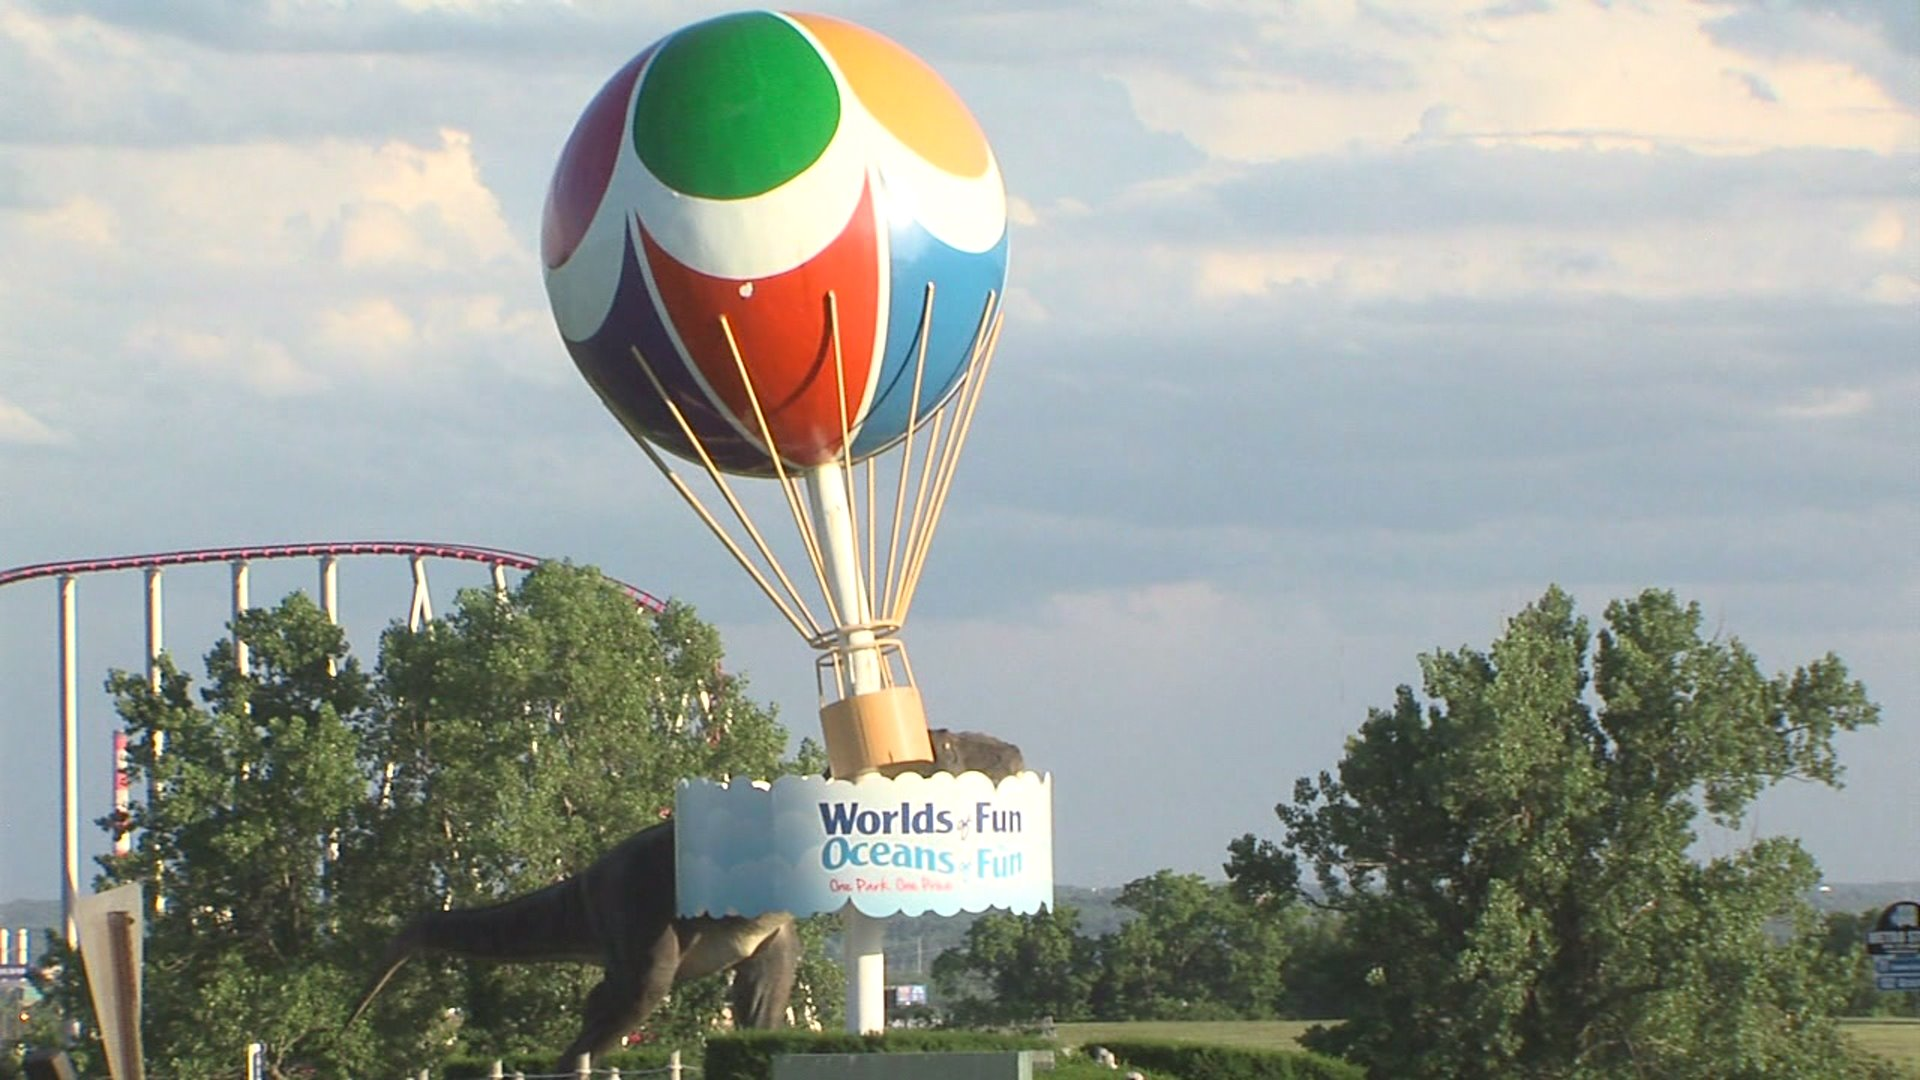 Picture of worlds of fun balloon